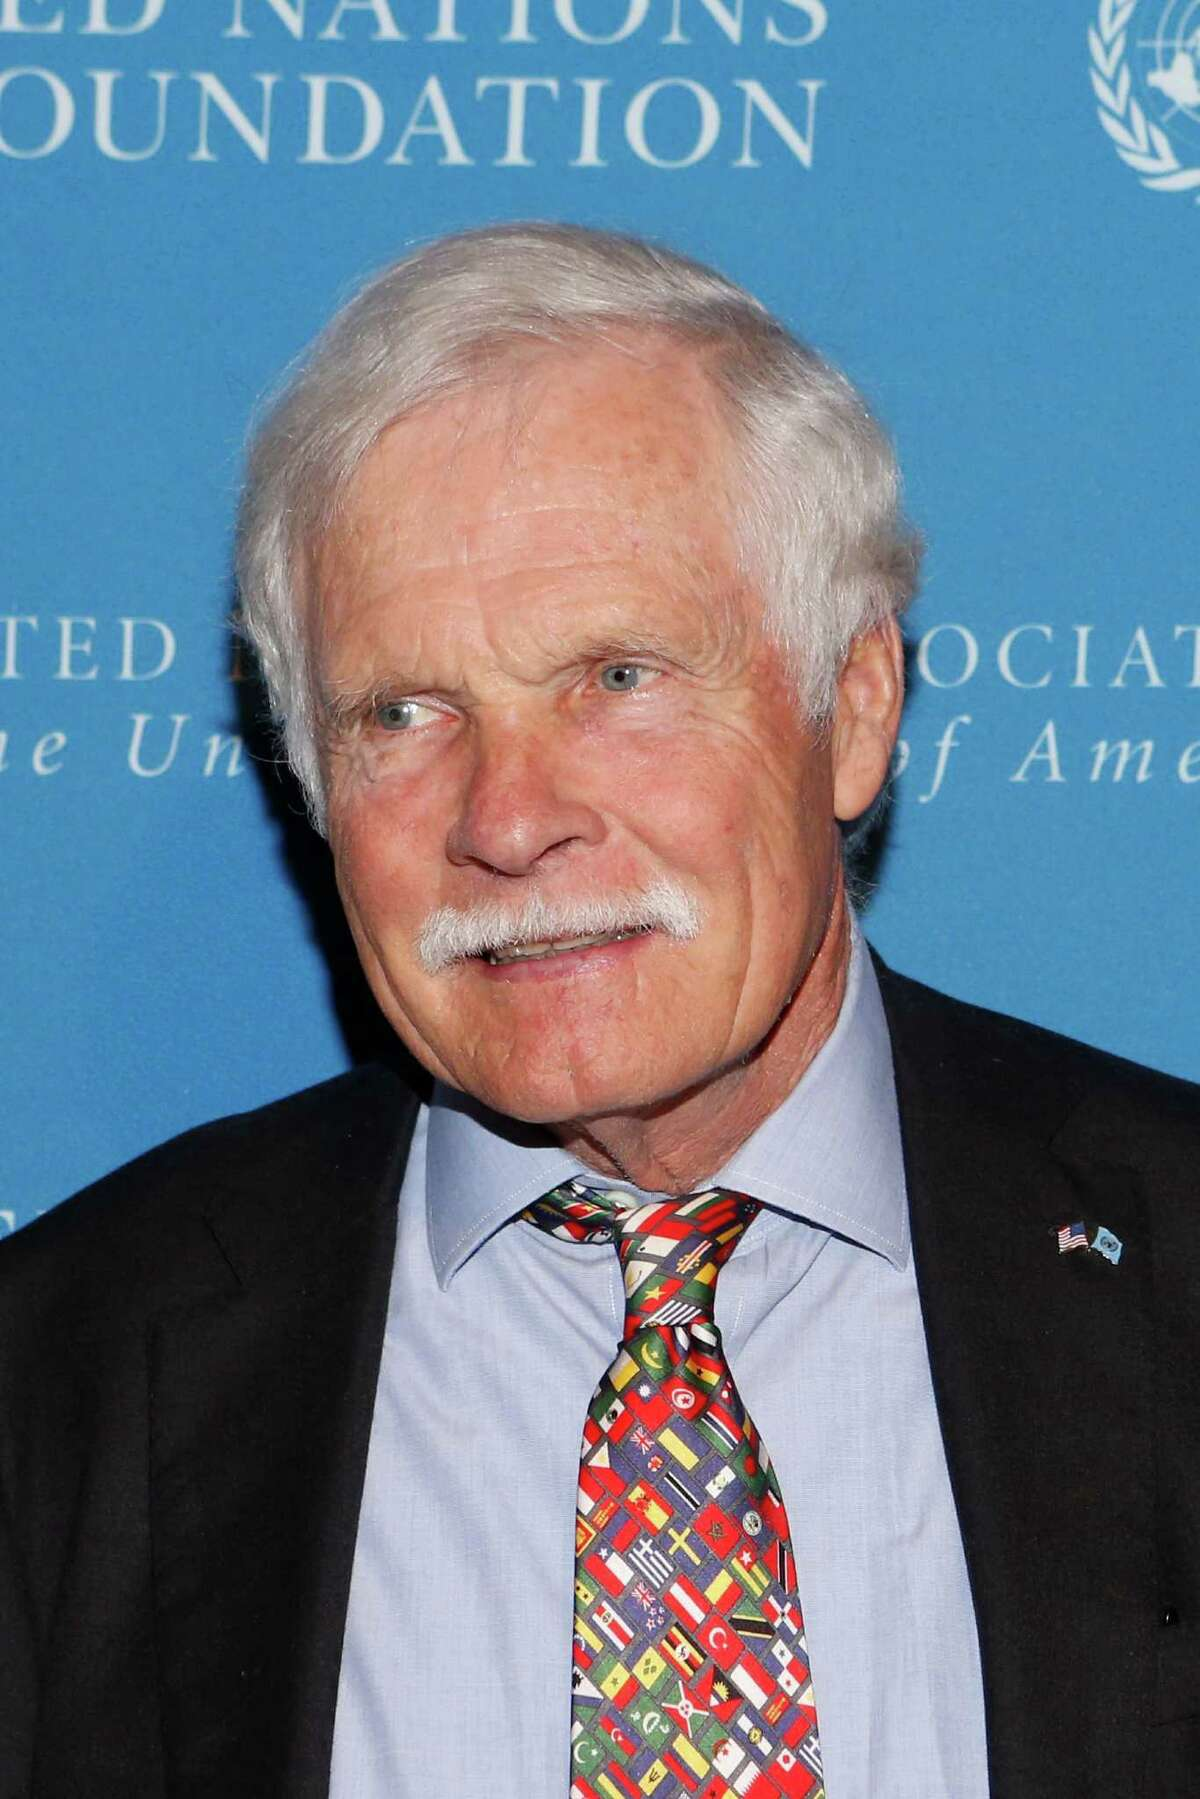 CNN founder Ted Turner poses for a photo at the United Nations Foundation Global Leadership Dinner, Wednesday, Nov. 6, 2013, in New York. (AP Photo/Jason DeCrow) ORG XMIT: NYJD106